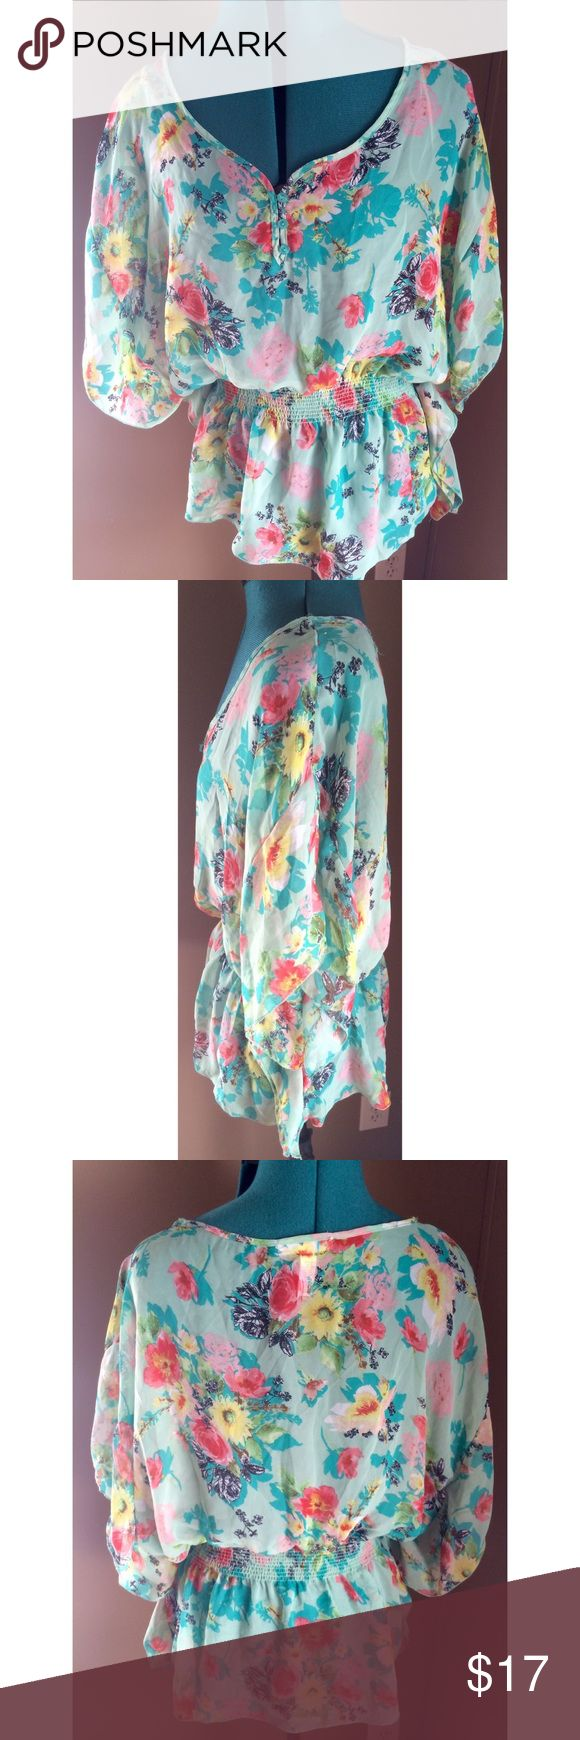 "Ambiance Apparel Sheer Boho Peasant Floral Top Pretty flirty floral sheer boho top from Ambiance Apparel Mint green and bright blue with multicolor flowers allover 3 small buttons up the front ruched waist and short flowing batwing sleeves Polyester Size Large - Pit to pit: 23"" ---- length: 27"" Good used condition - gently worn.  Free of rips, stains, odors. Ambiance Apparel Tops"